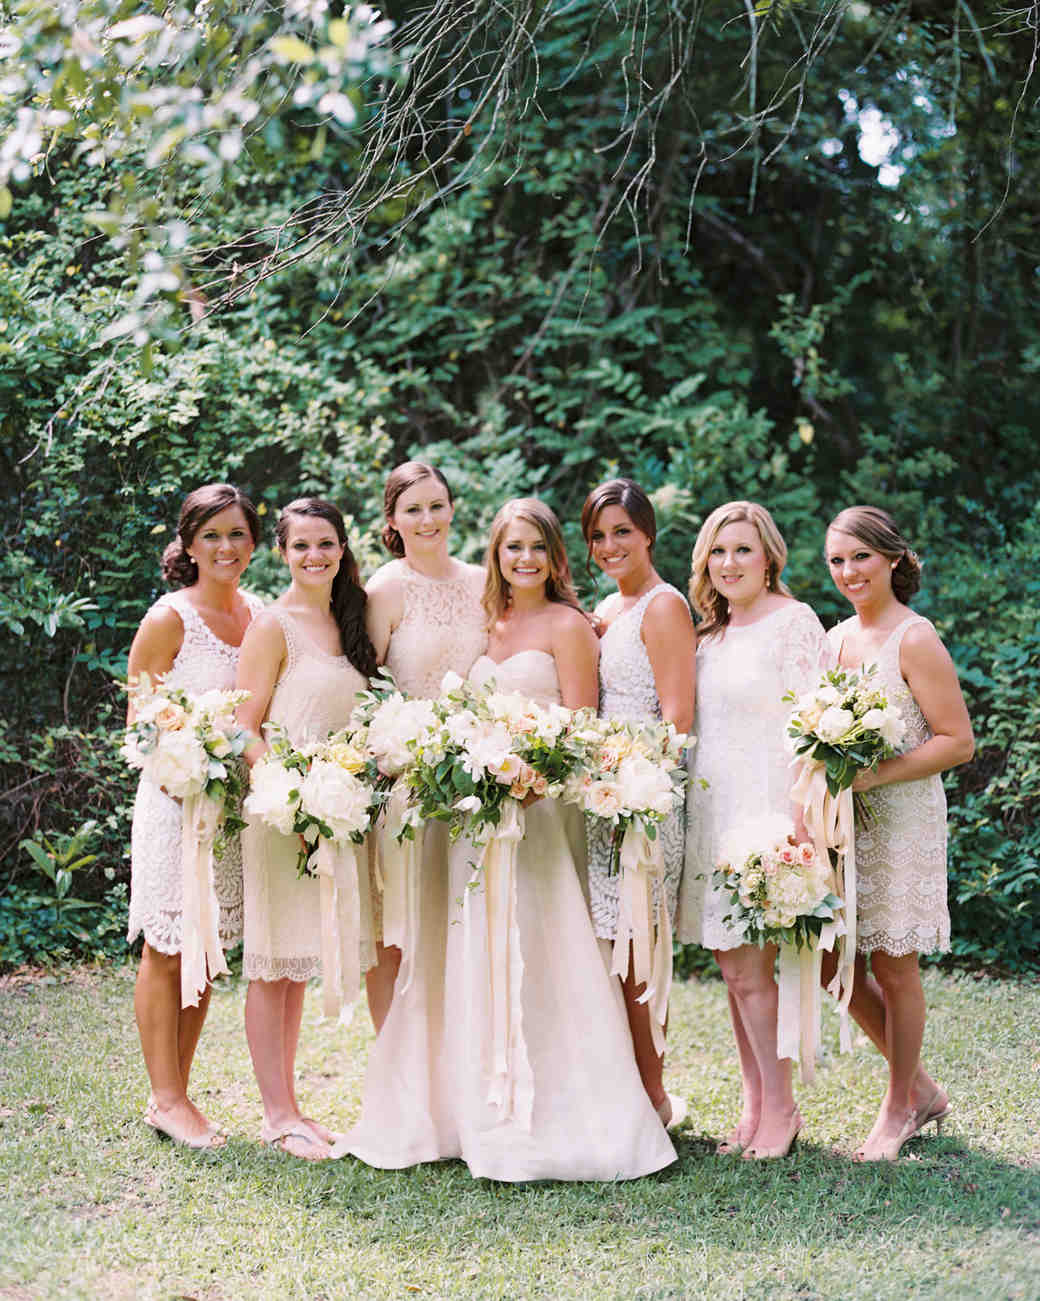 irby-adam-wedding-bridesmaids-141-s111660-1014.jpg